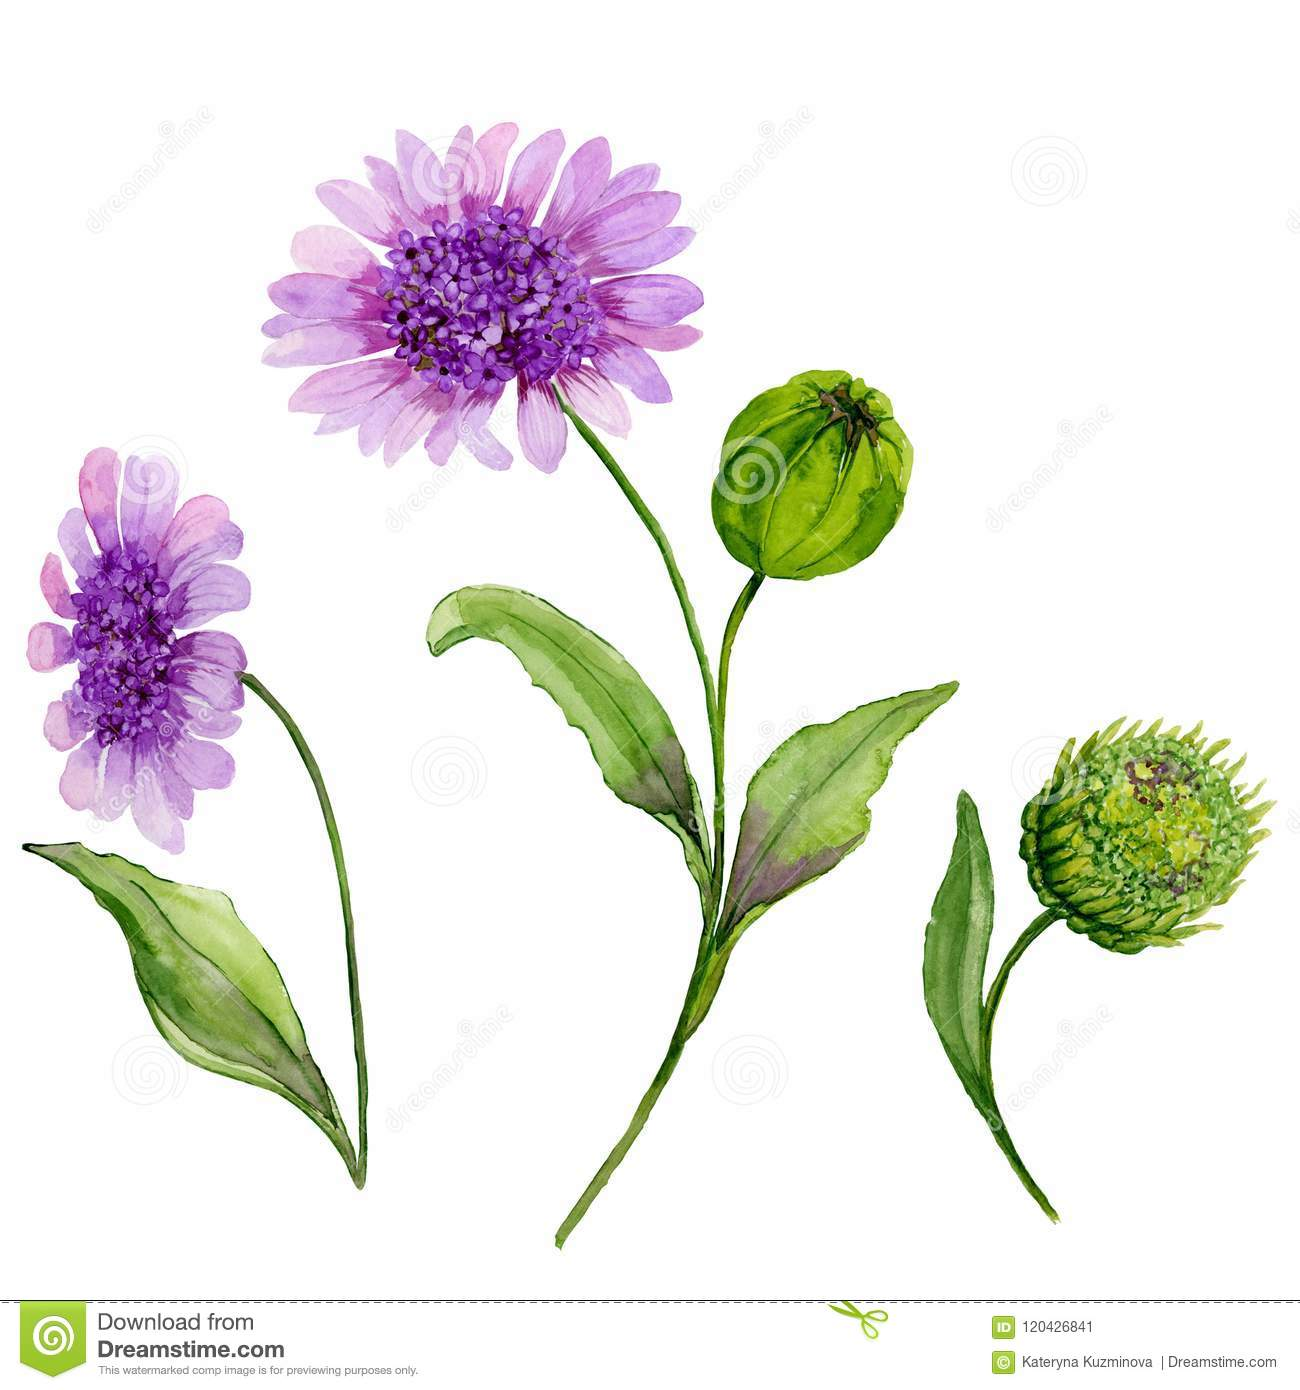 Beautiful spring floral illustration purple daisy stock purple daisy flowers on a stem with leaves and closed bud isolated on white background watercolor painting hand painted image izmirmasajfo